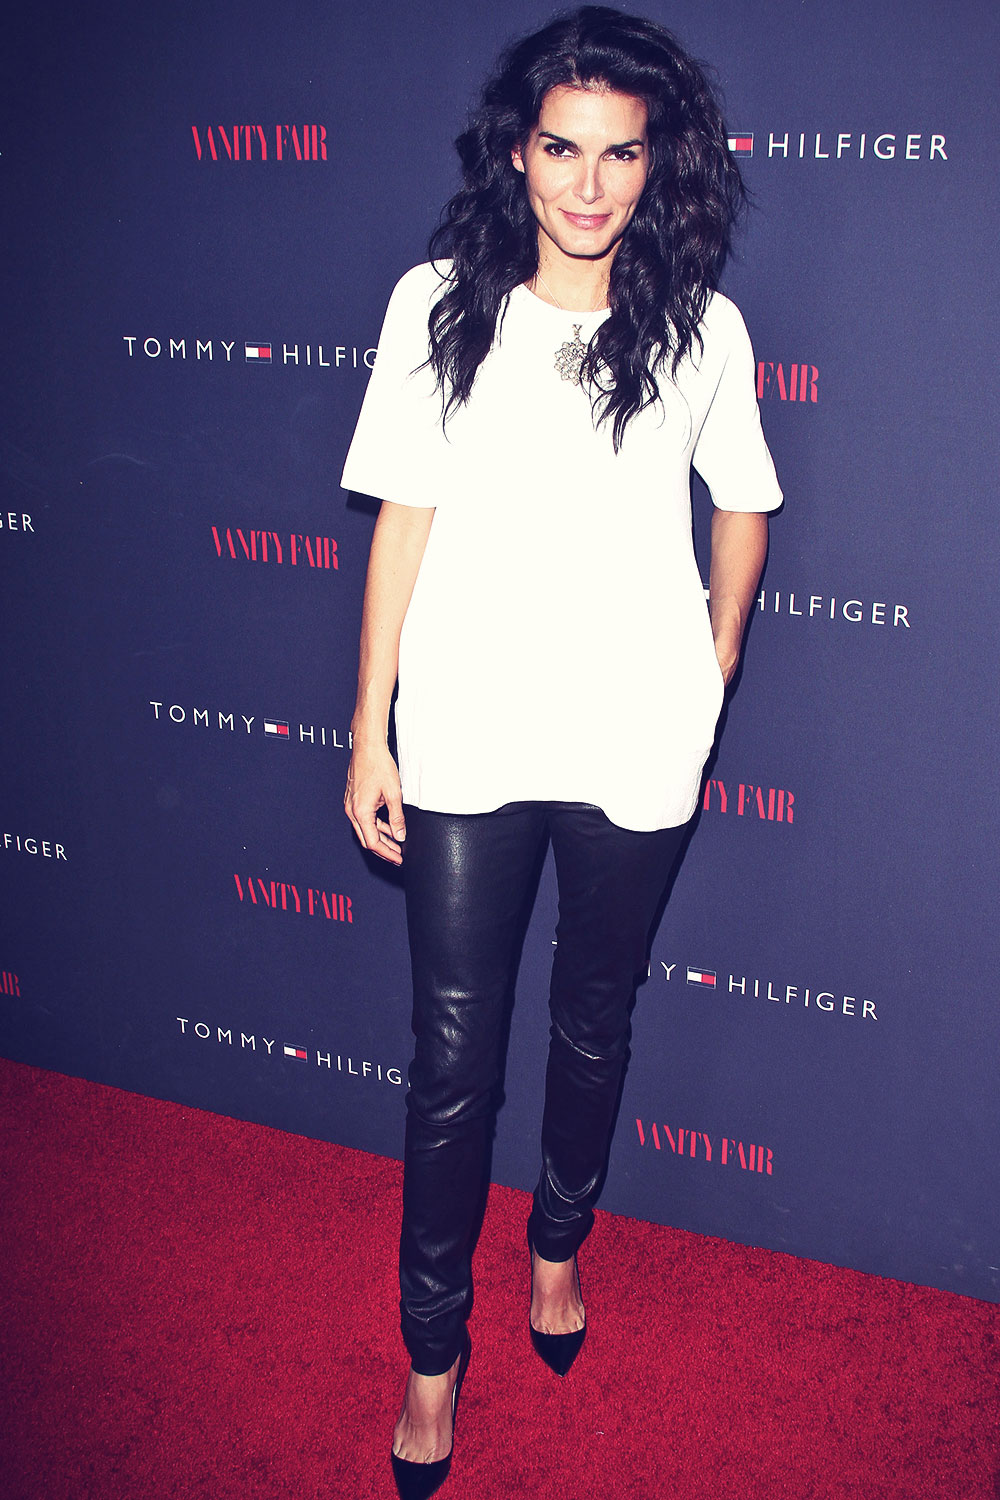 Angie Harmon attends Zooey Deschanel And Tommy Hilfiger Debut New Capsule Collection